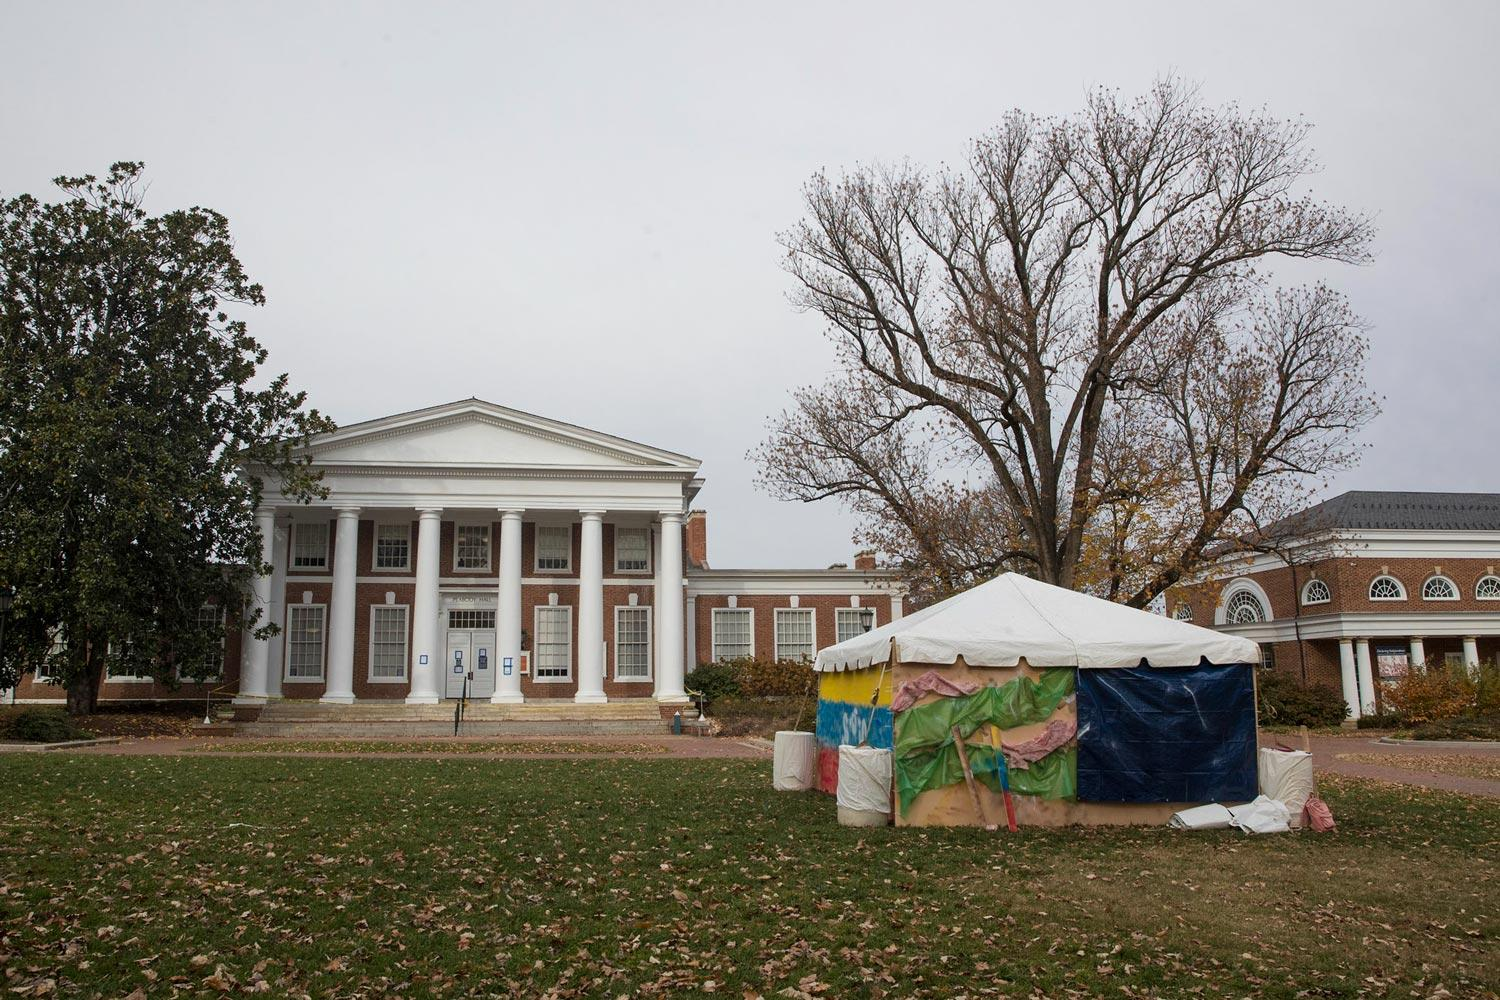 A group of UVA students have spent the semester planning and building this exhibit, which will be on display through Wednesday.